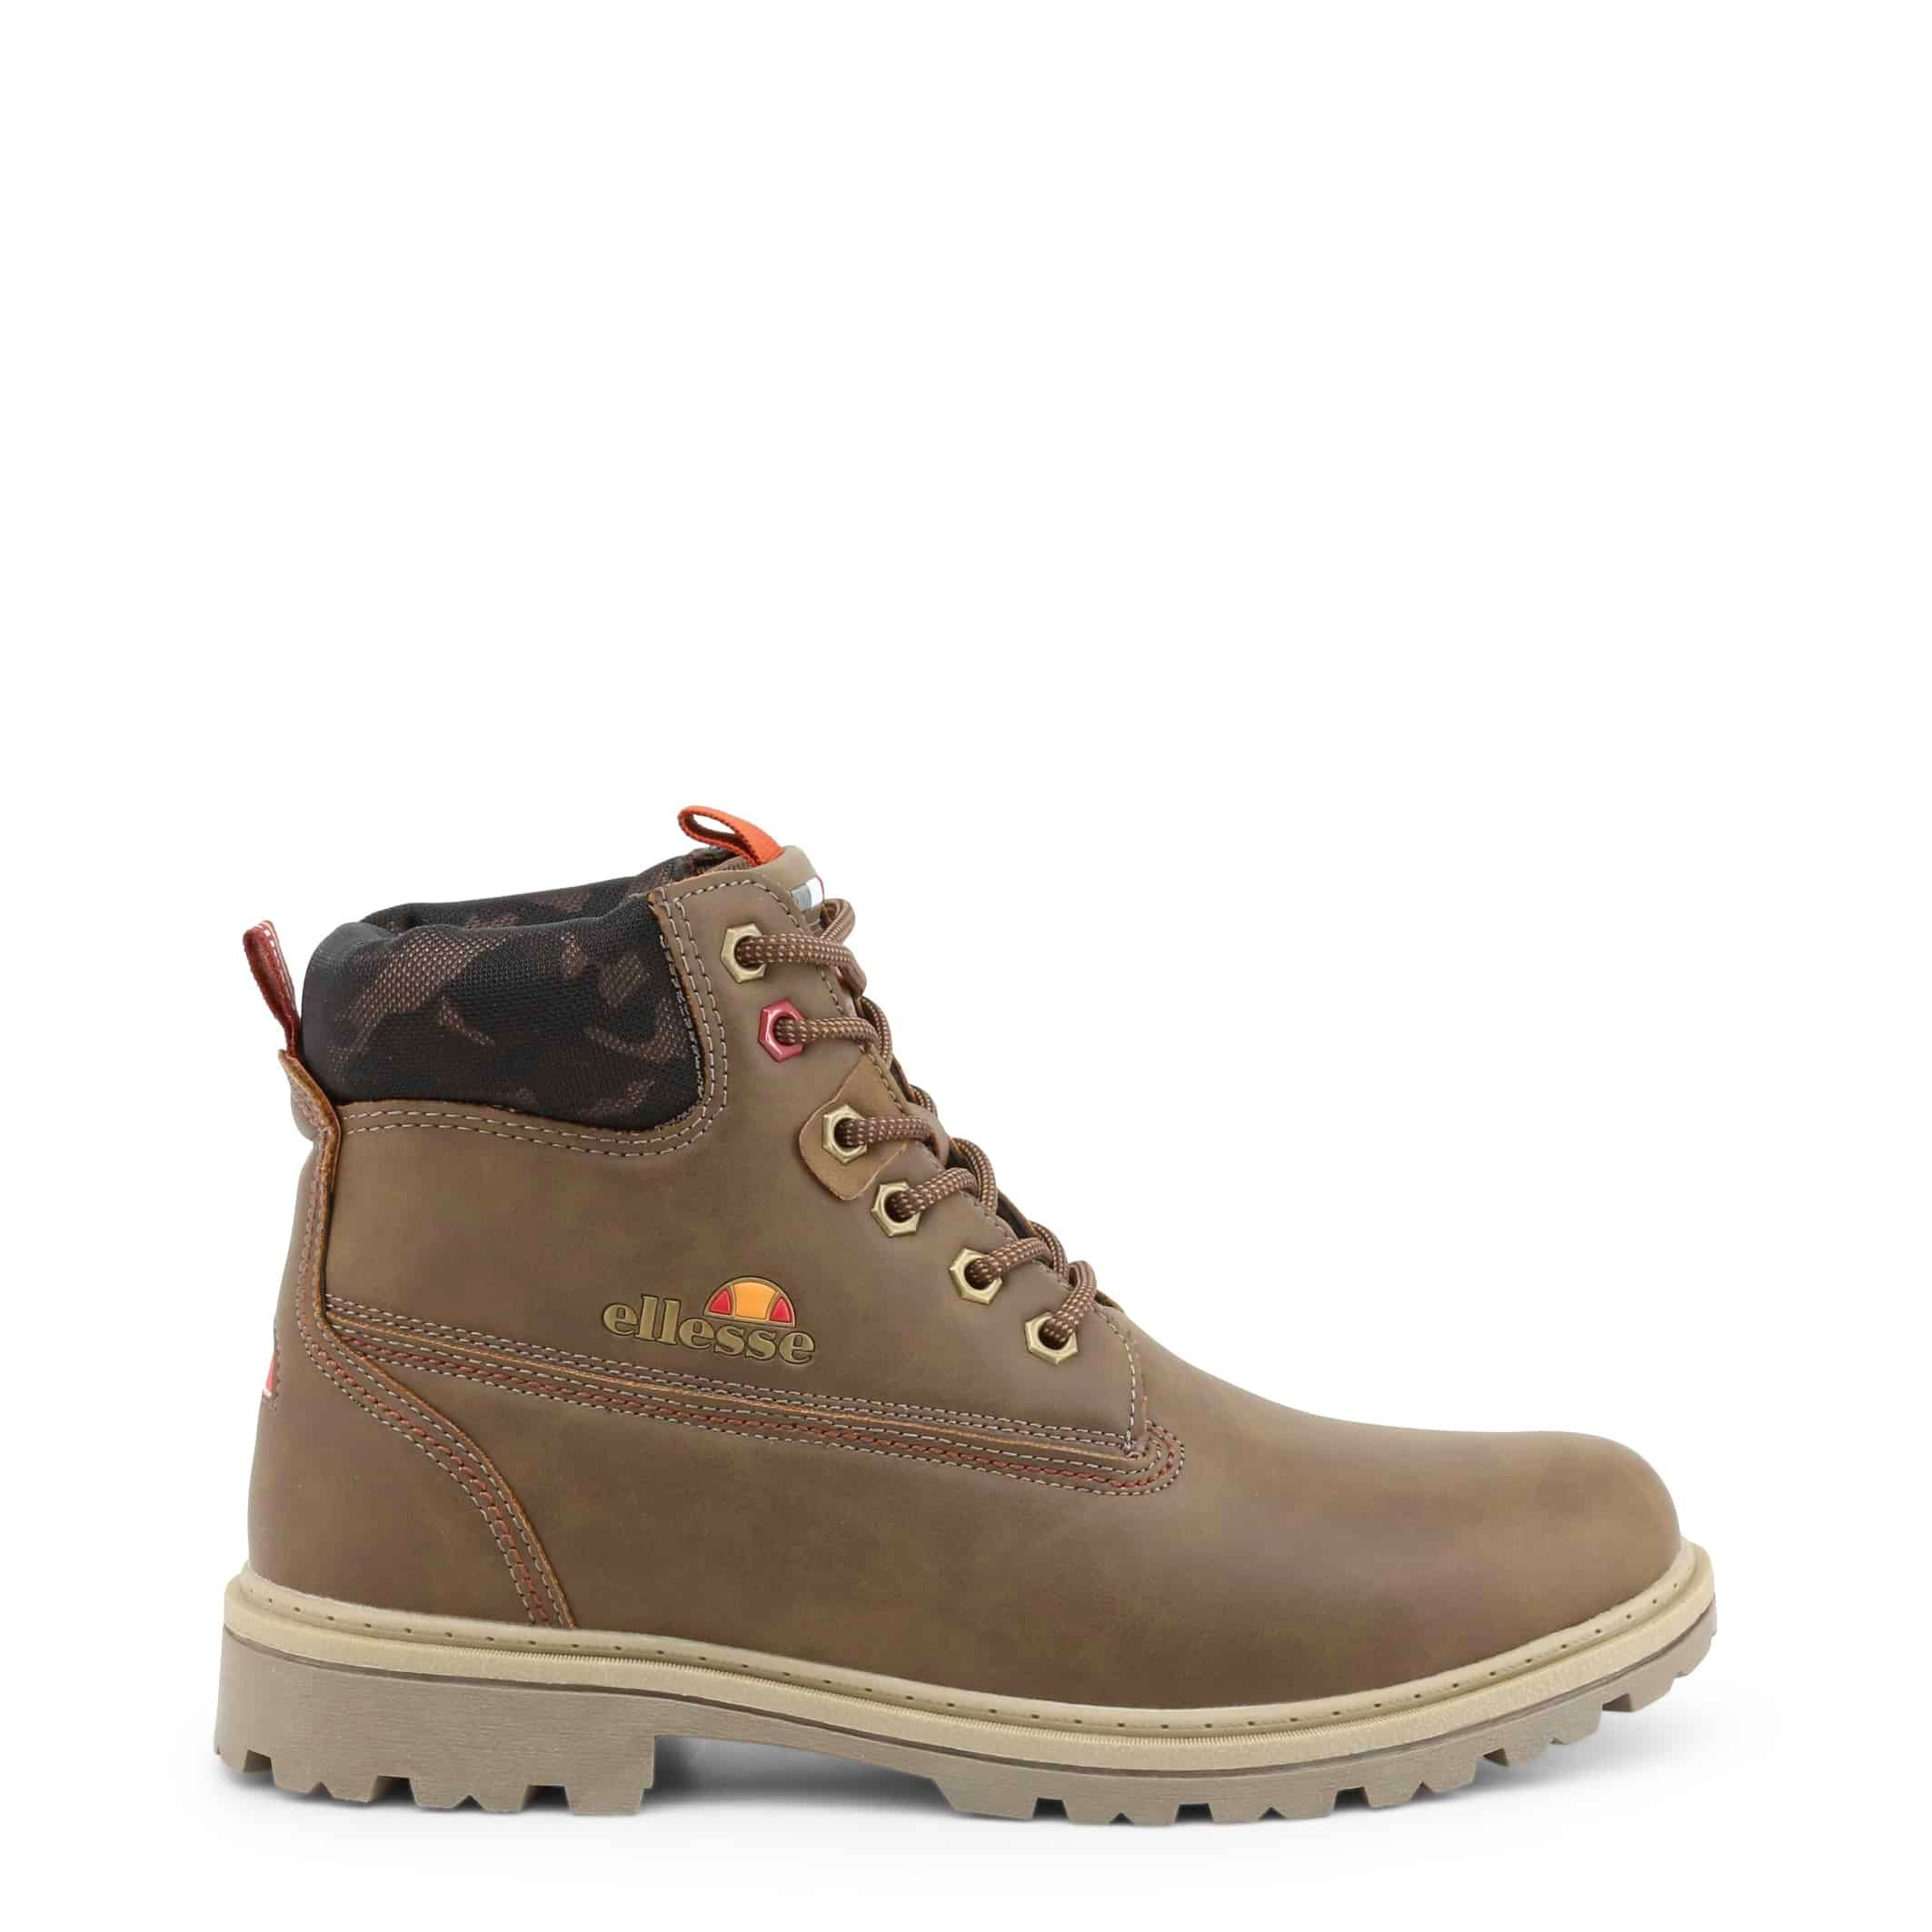 Bottines Ellesse – EL02M10401